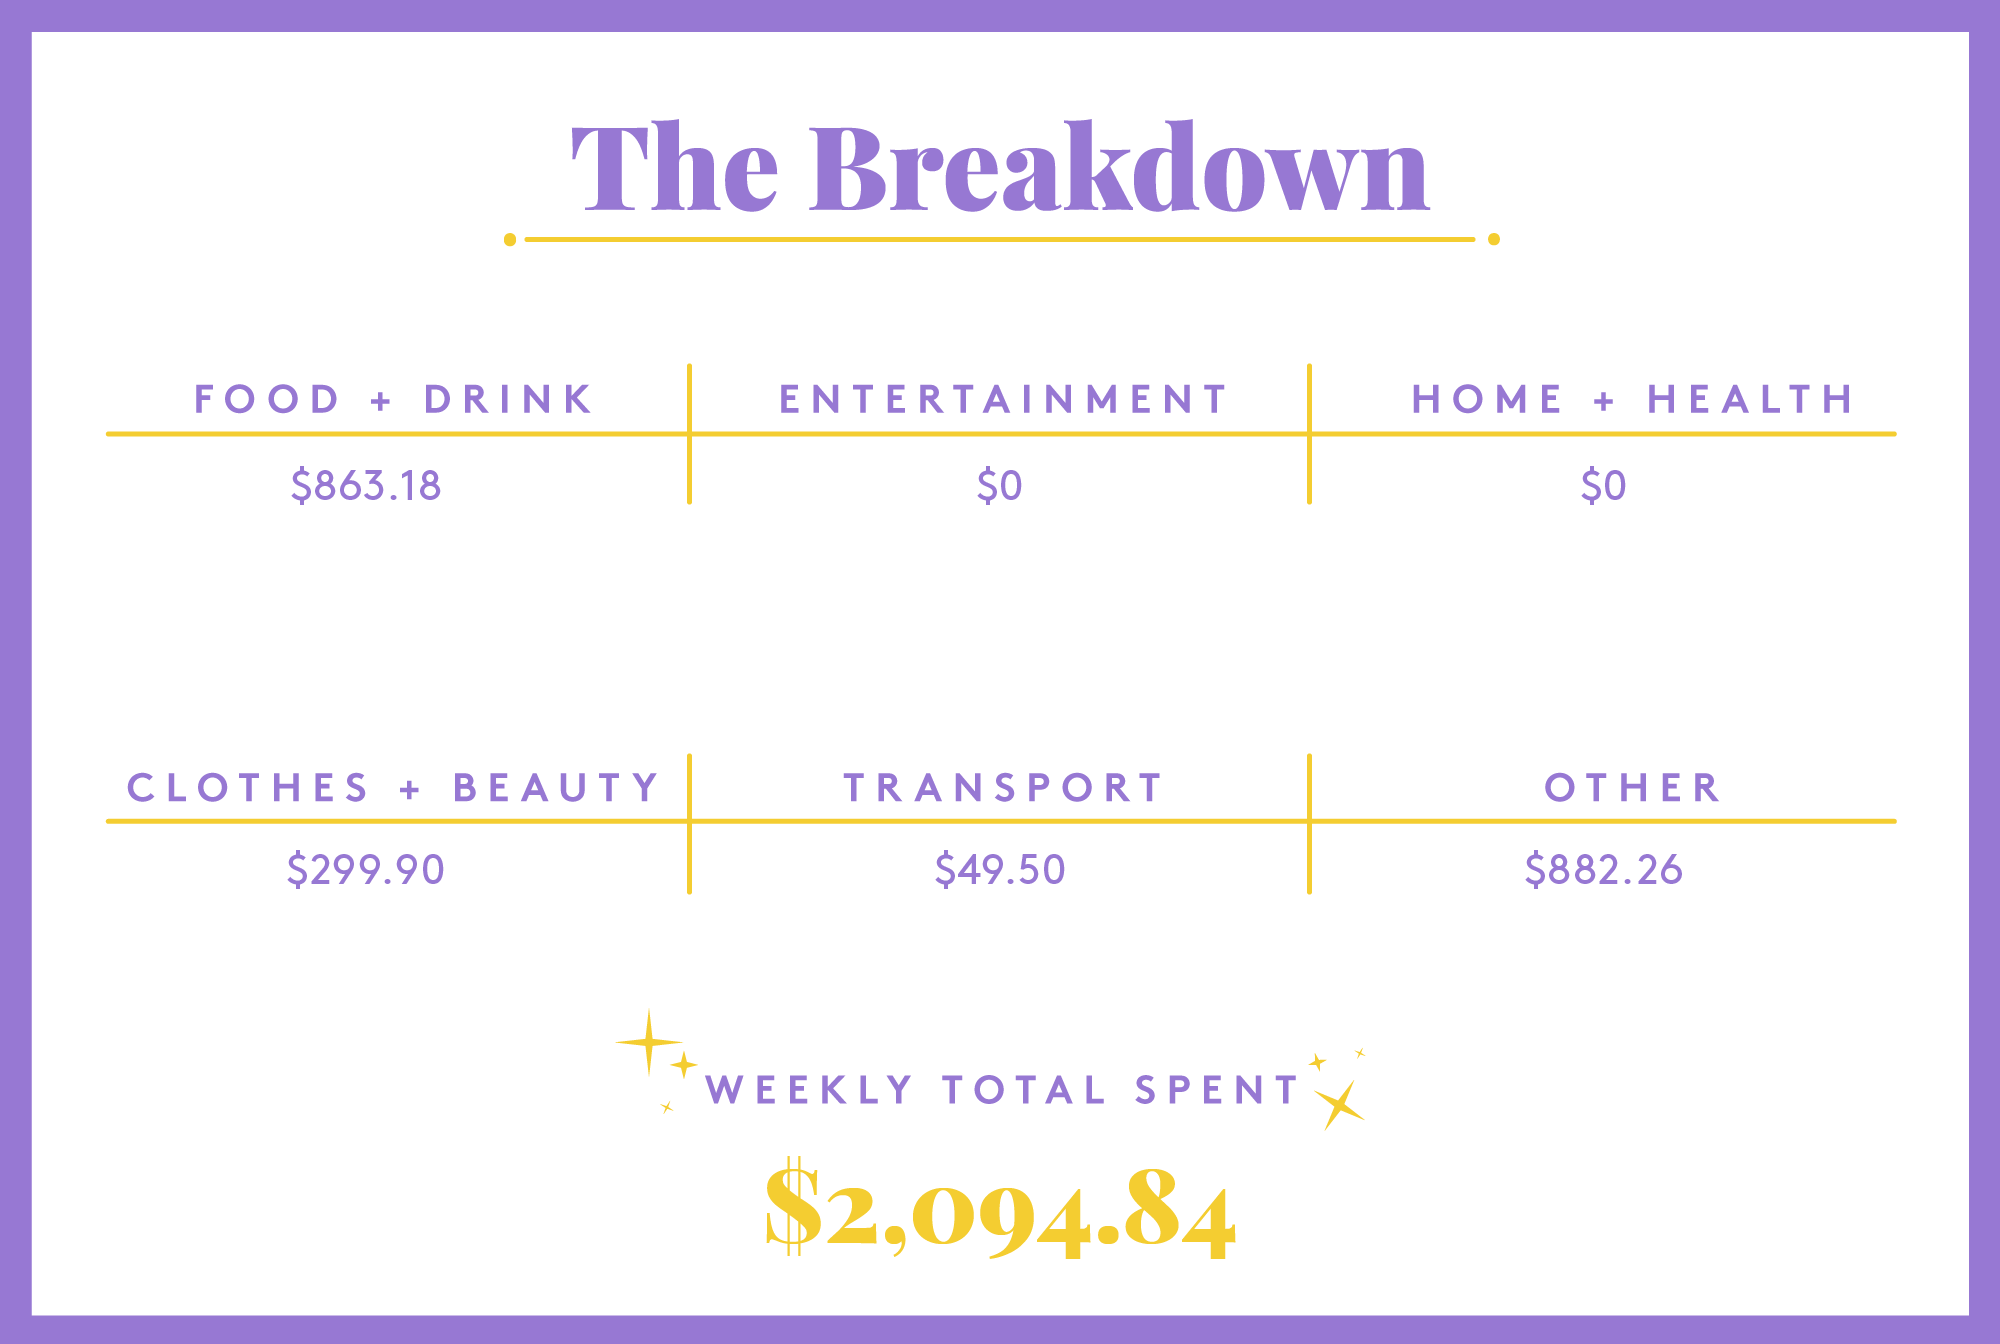 How expensive is the bunny ranch